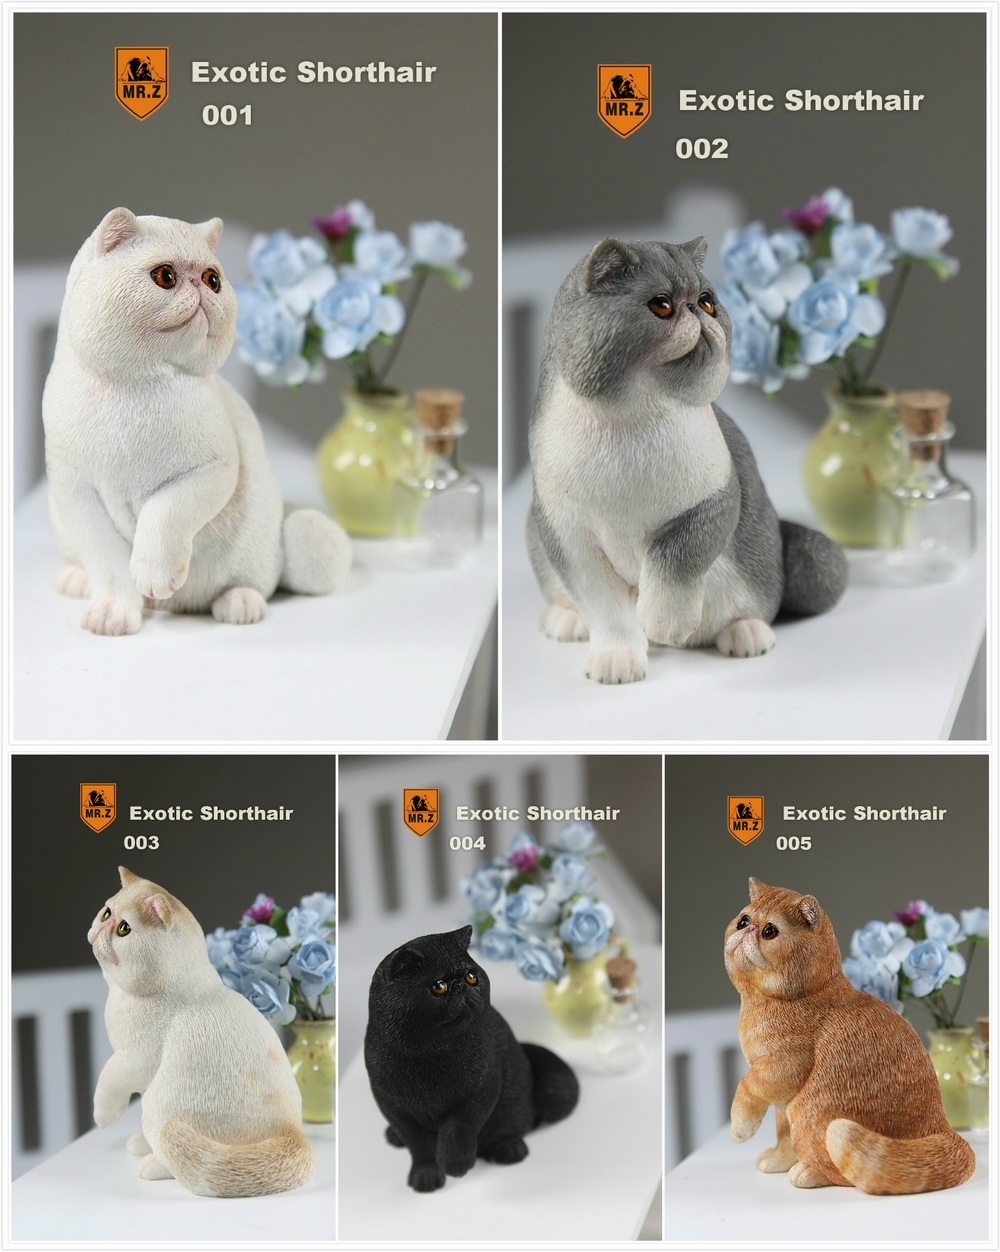 ФОТО  Real Animal Series No.8 1/6TH Scale Exotic Shorthair Cat (Garfield) Statue 4 Colors Collections